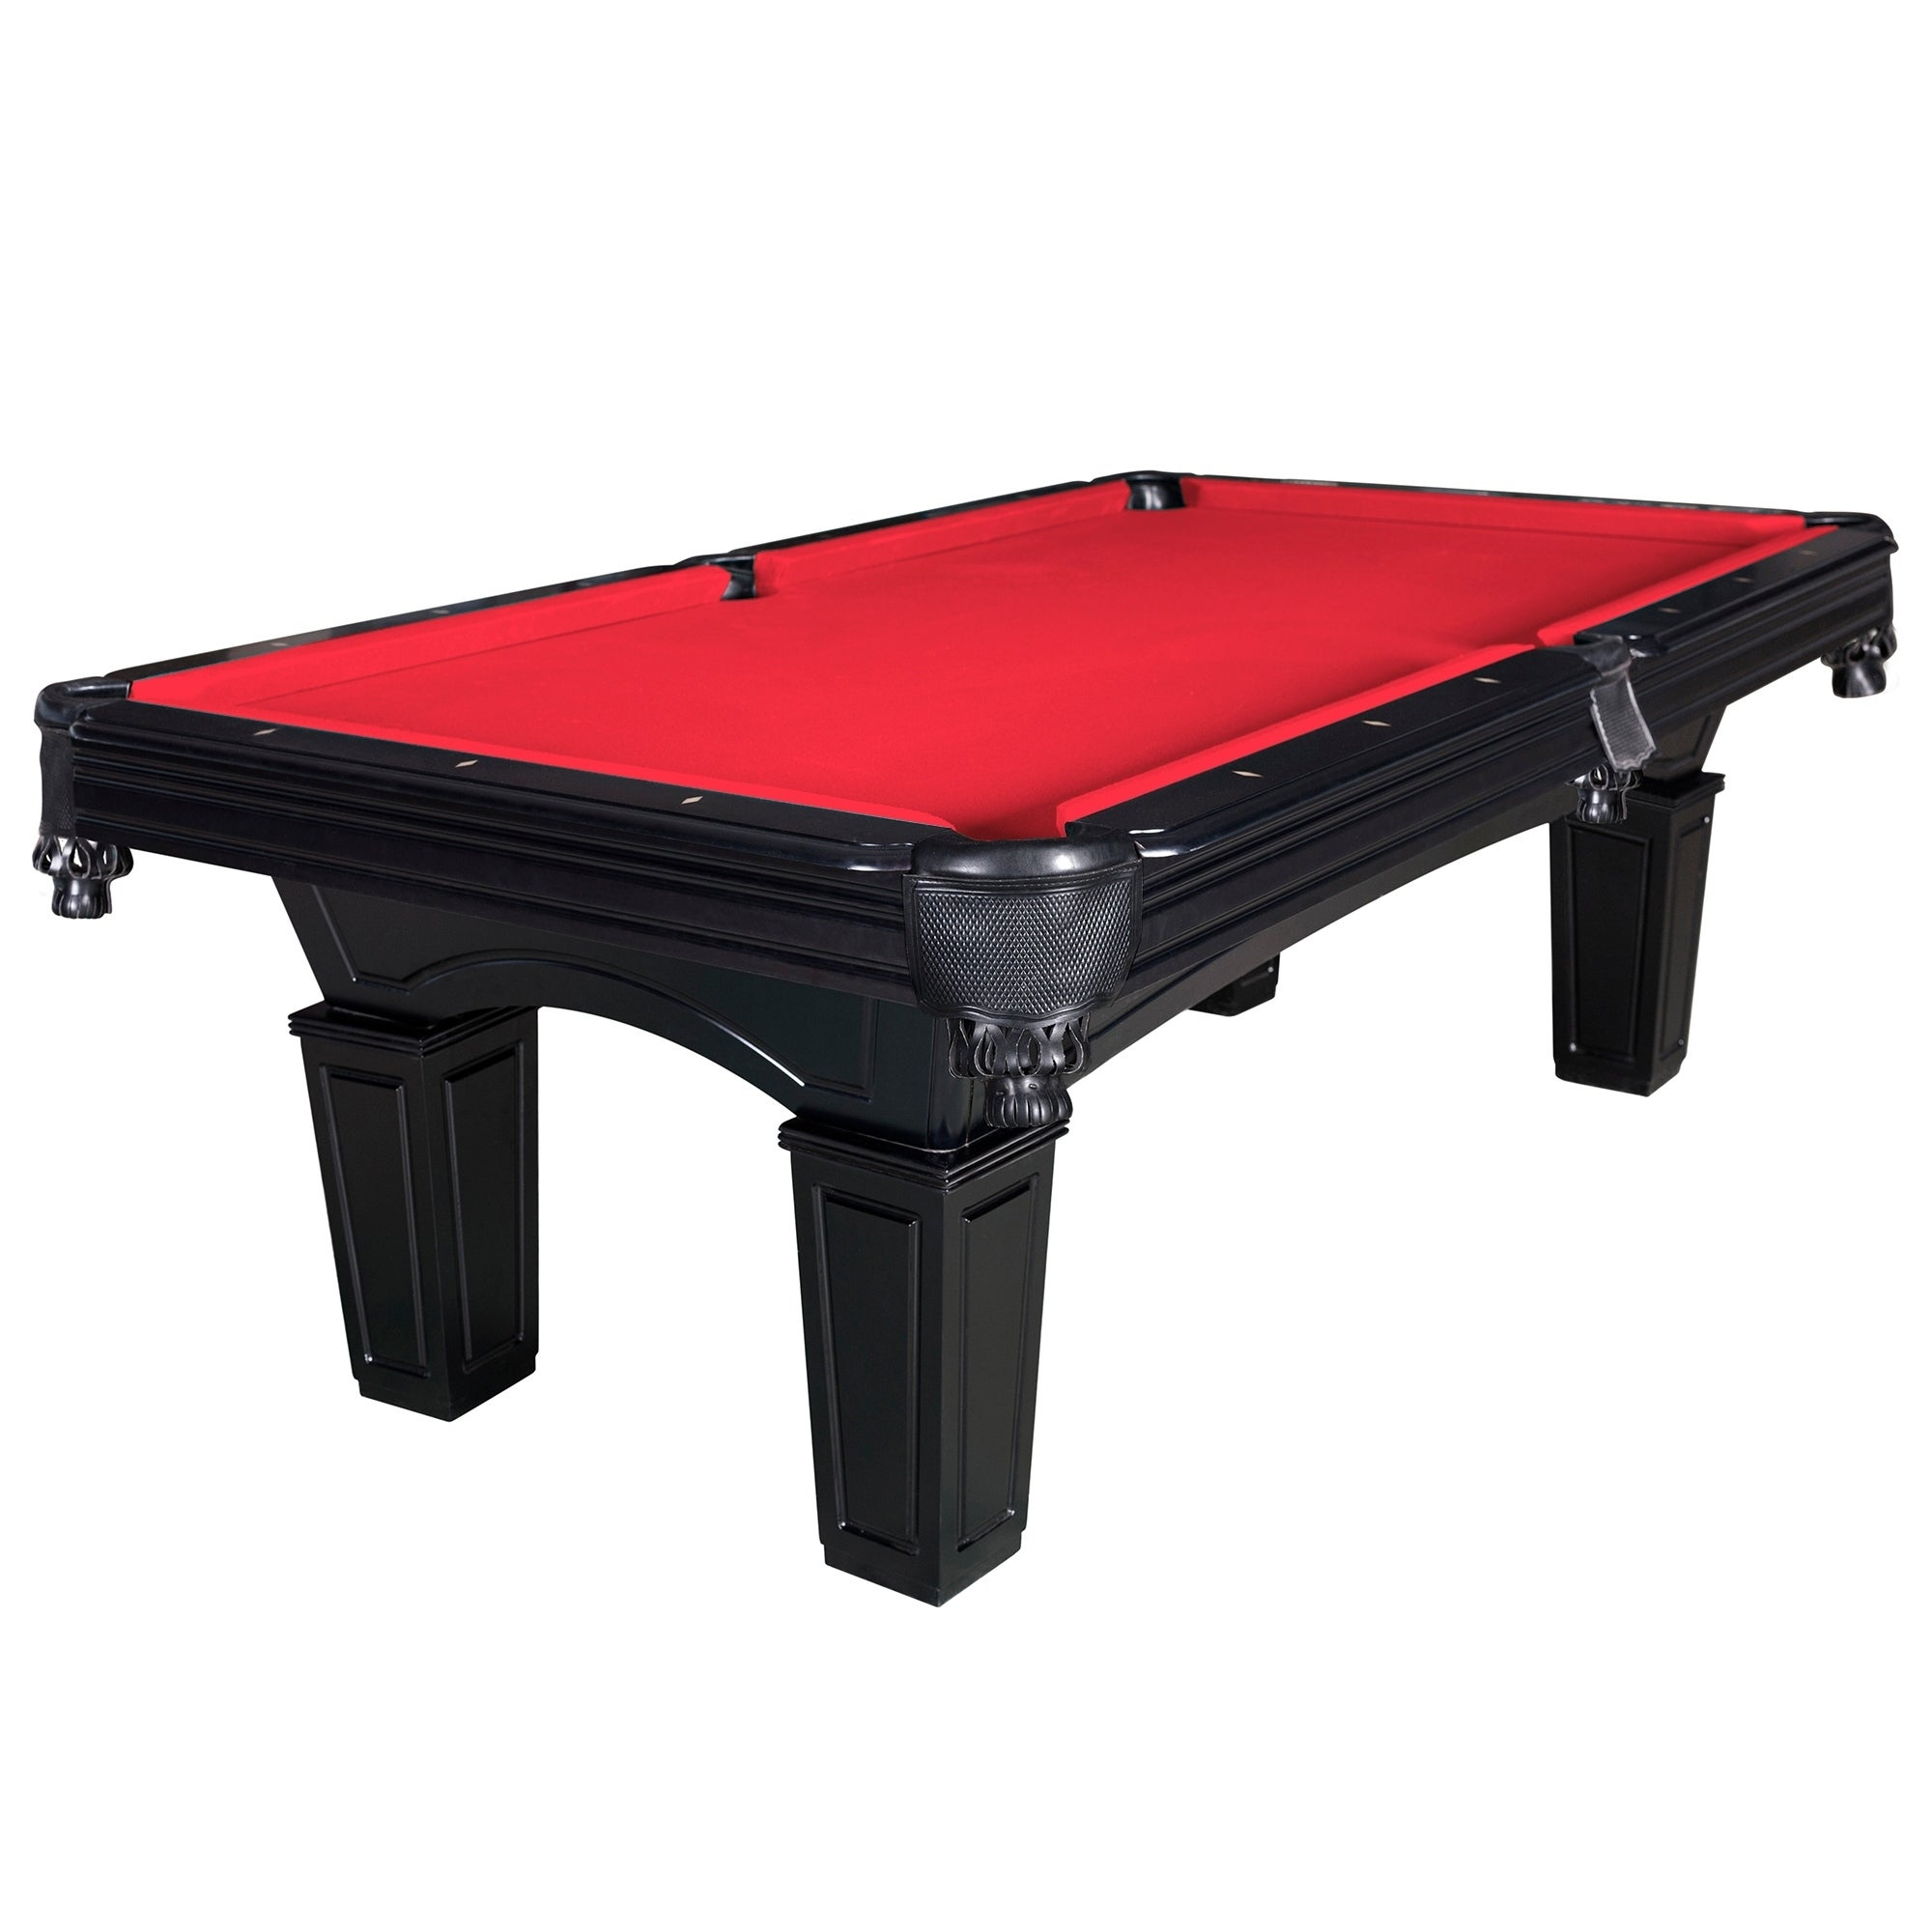 Shop Cobra 8-ft Slate Billiard Pool Table w/ Red Felt - Black - On